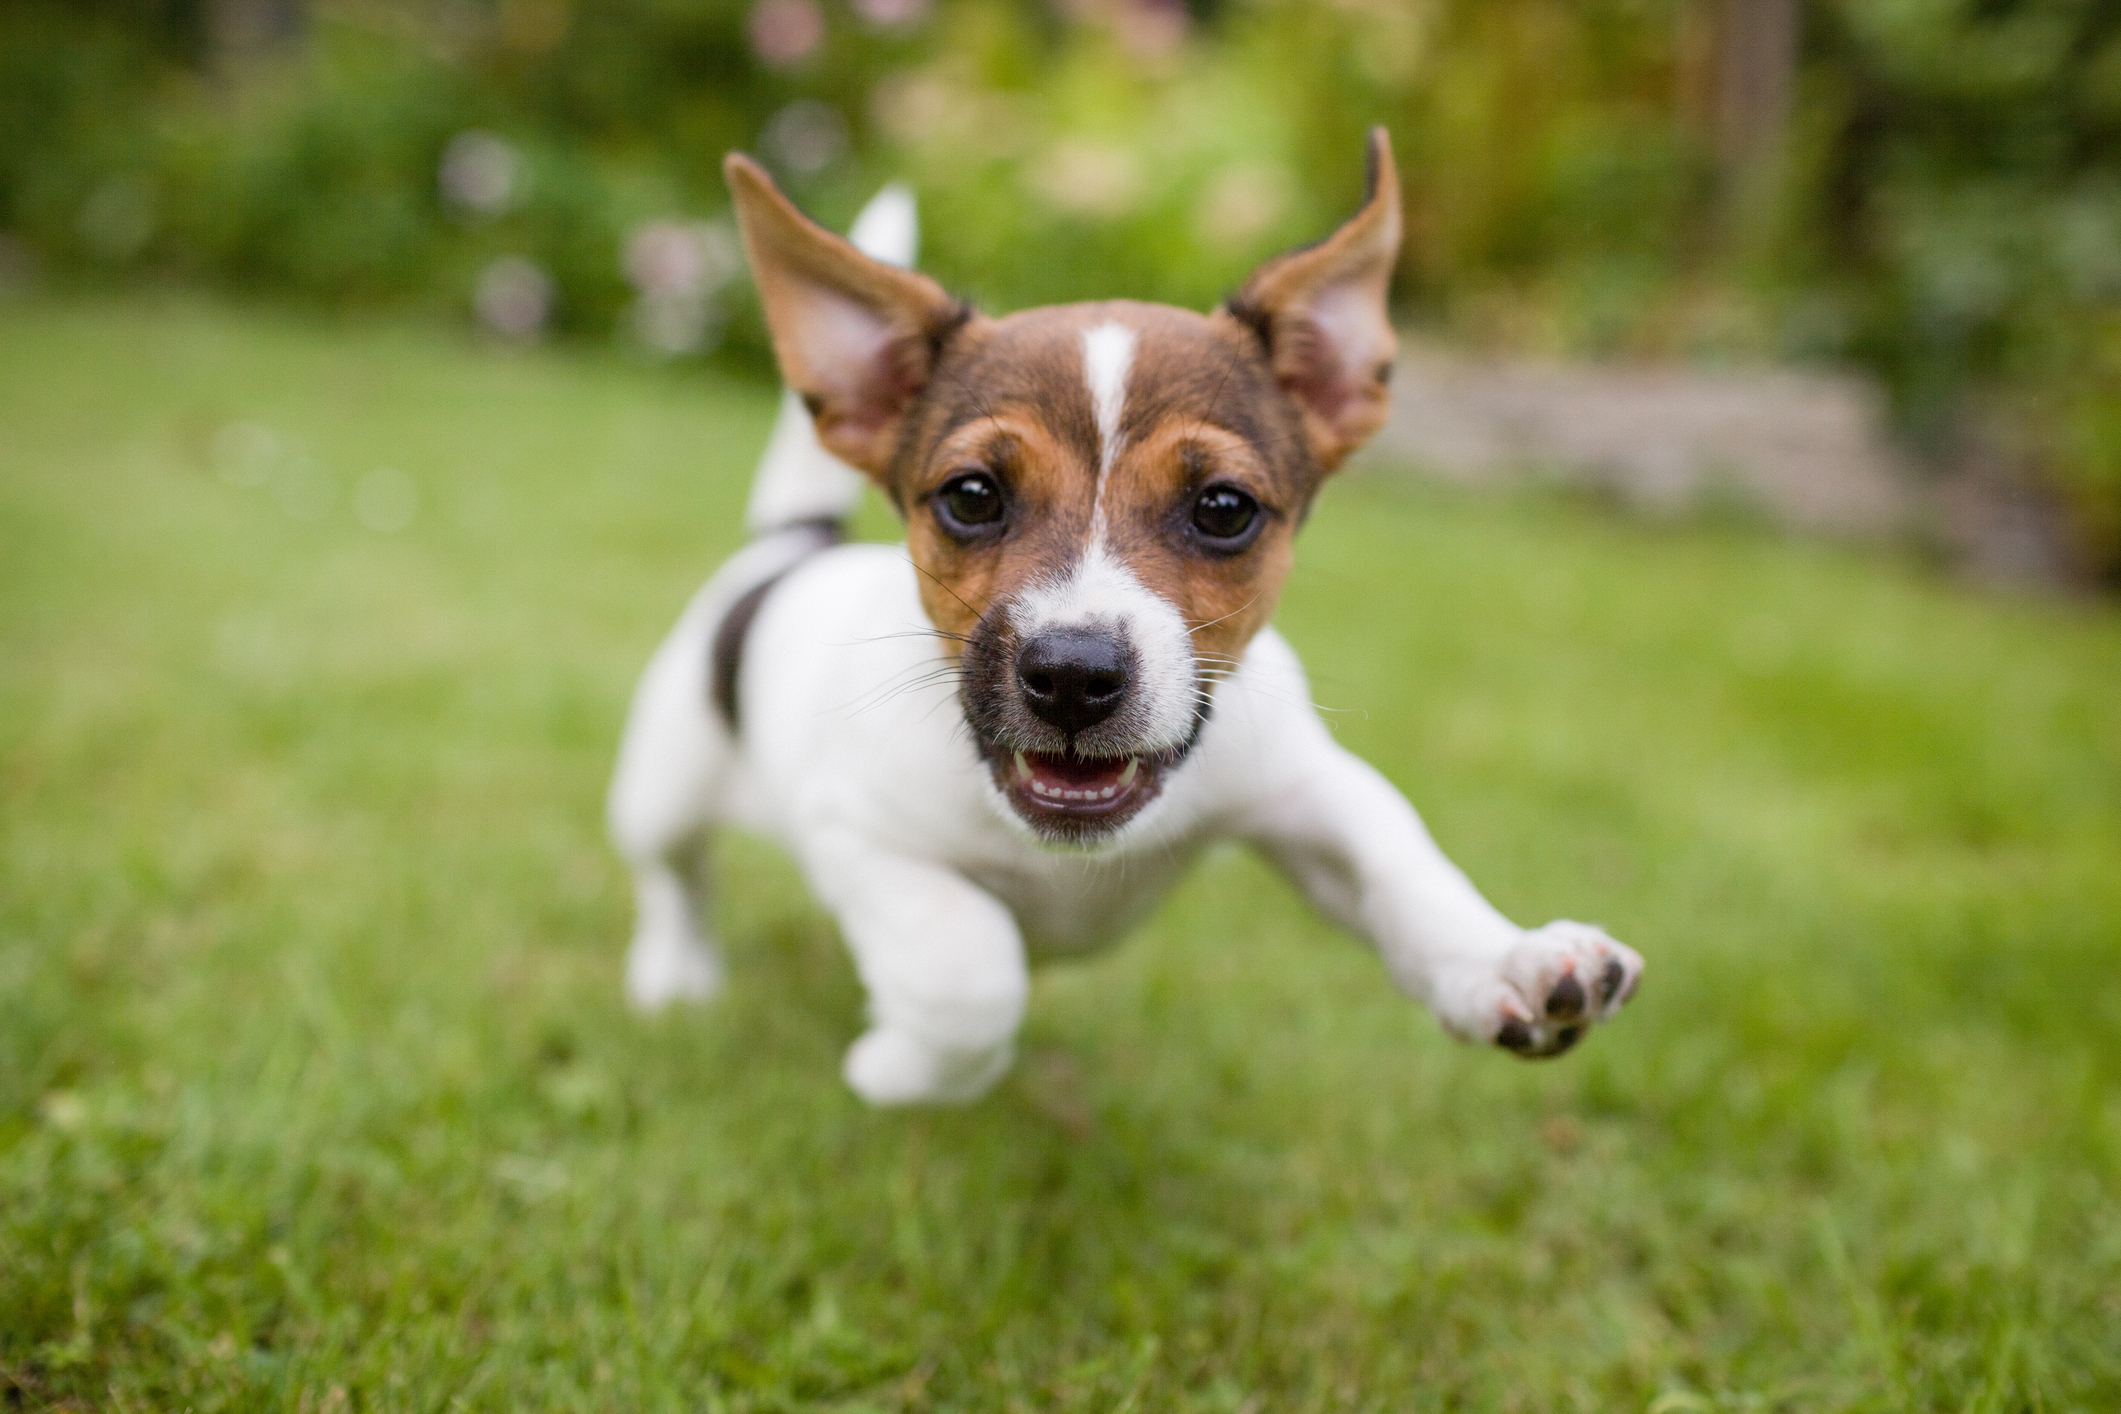 How to Tell When a Puppy Is Full Grown | LoveToKnow